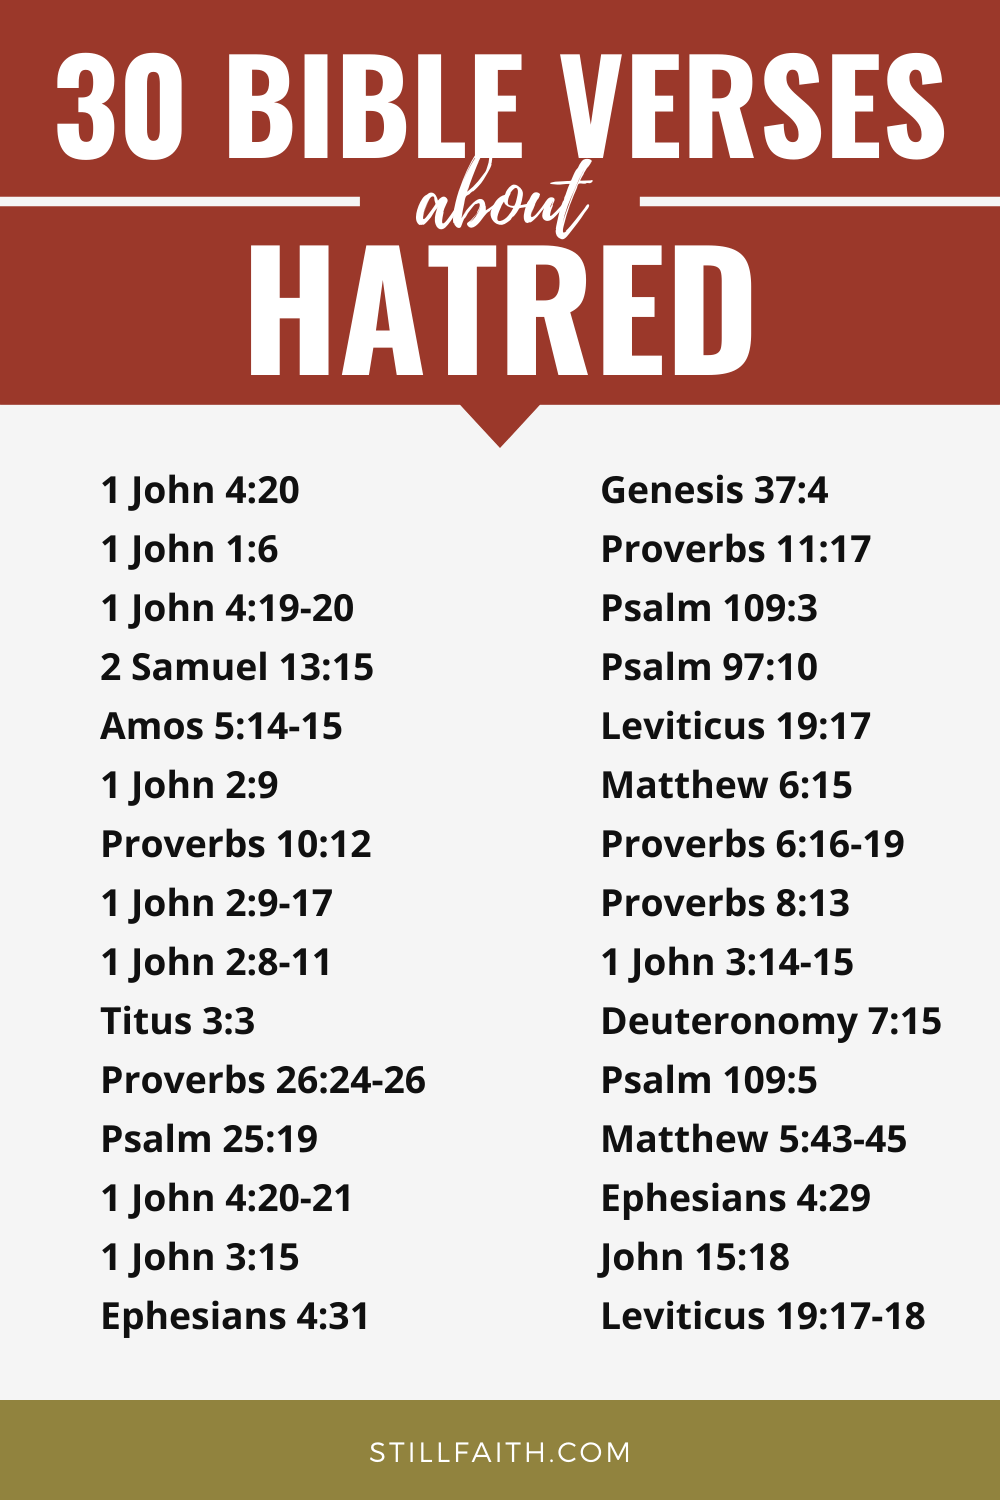 197 Bible Verses about Hatred